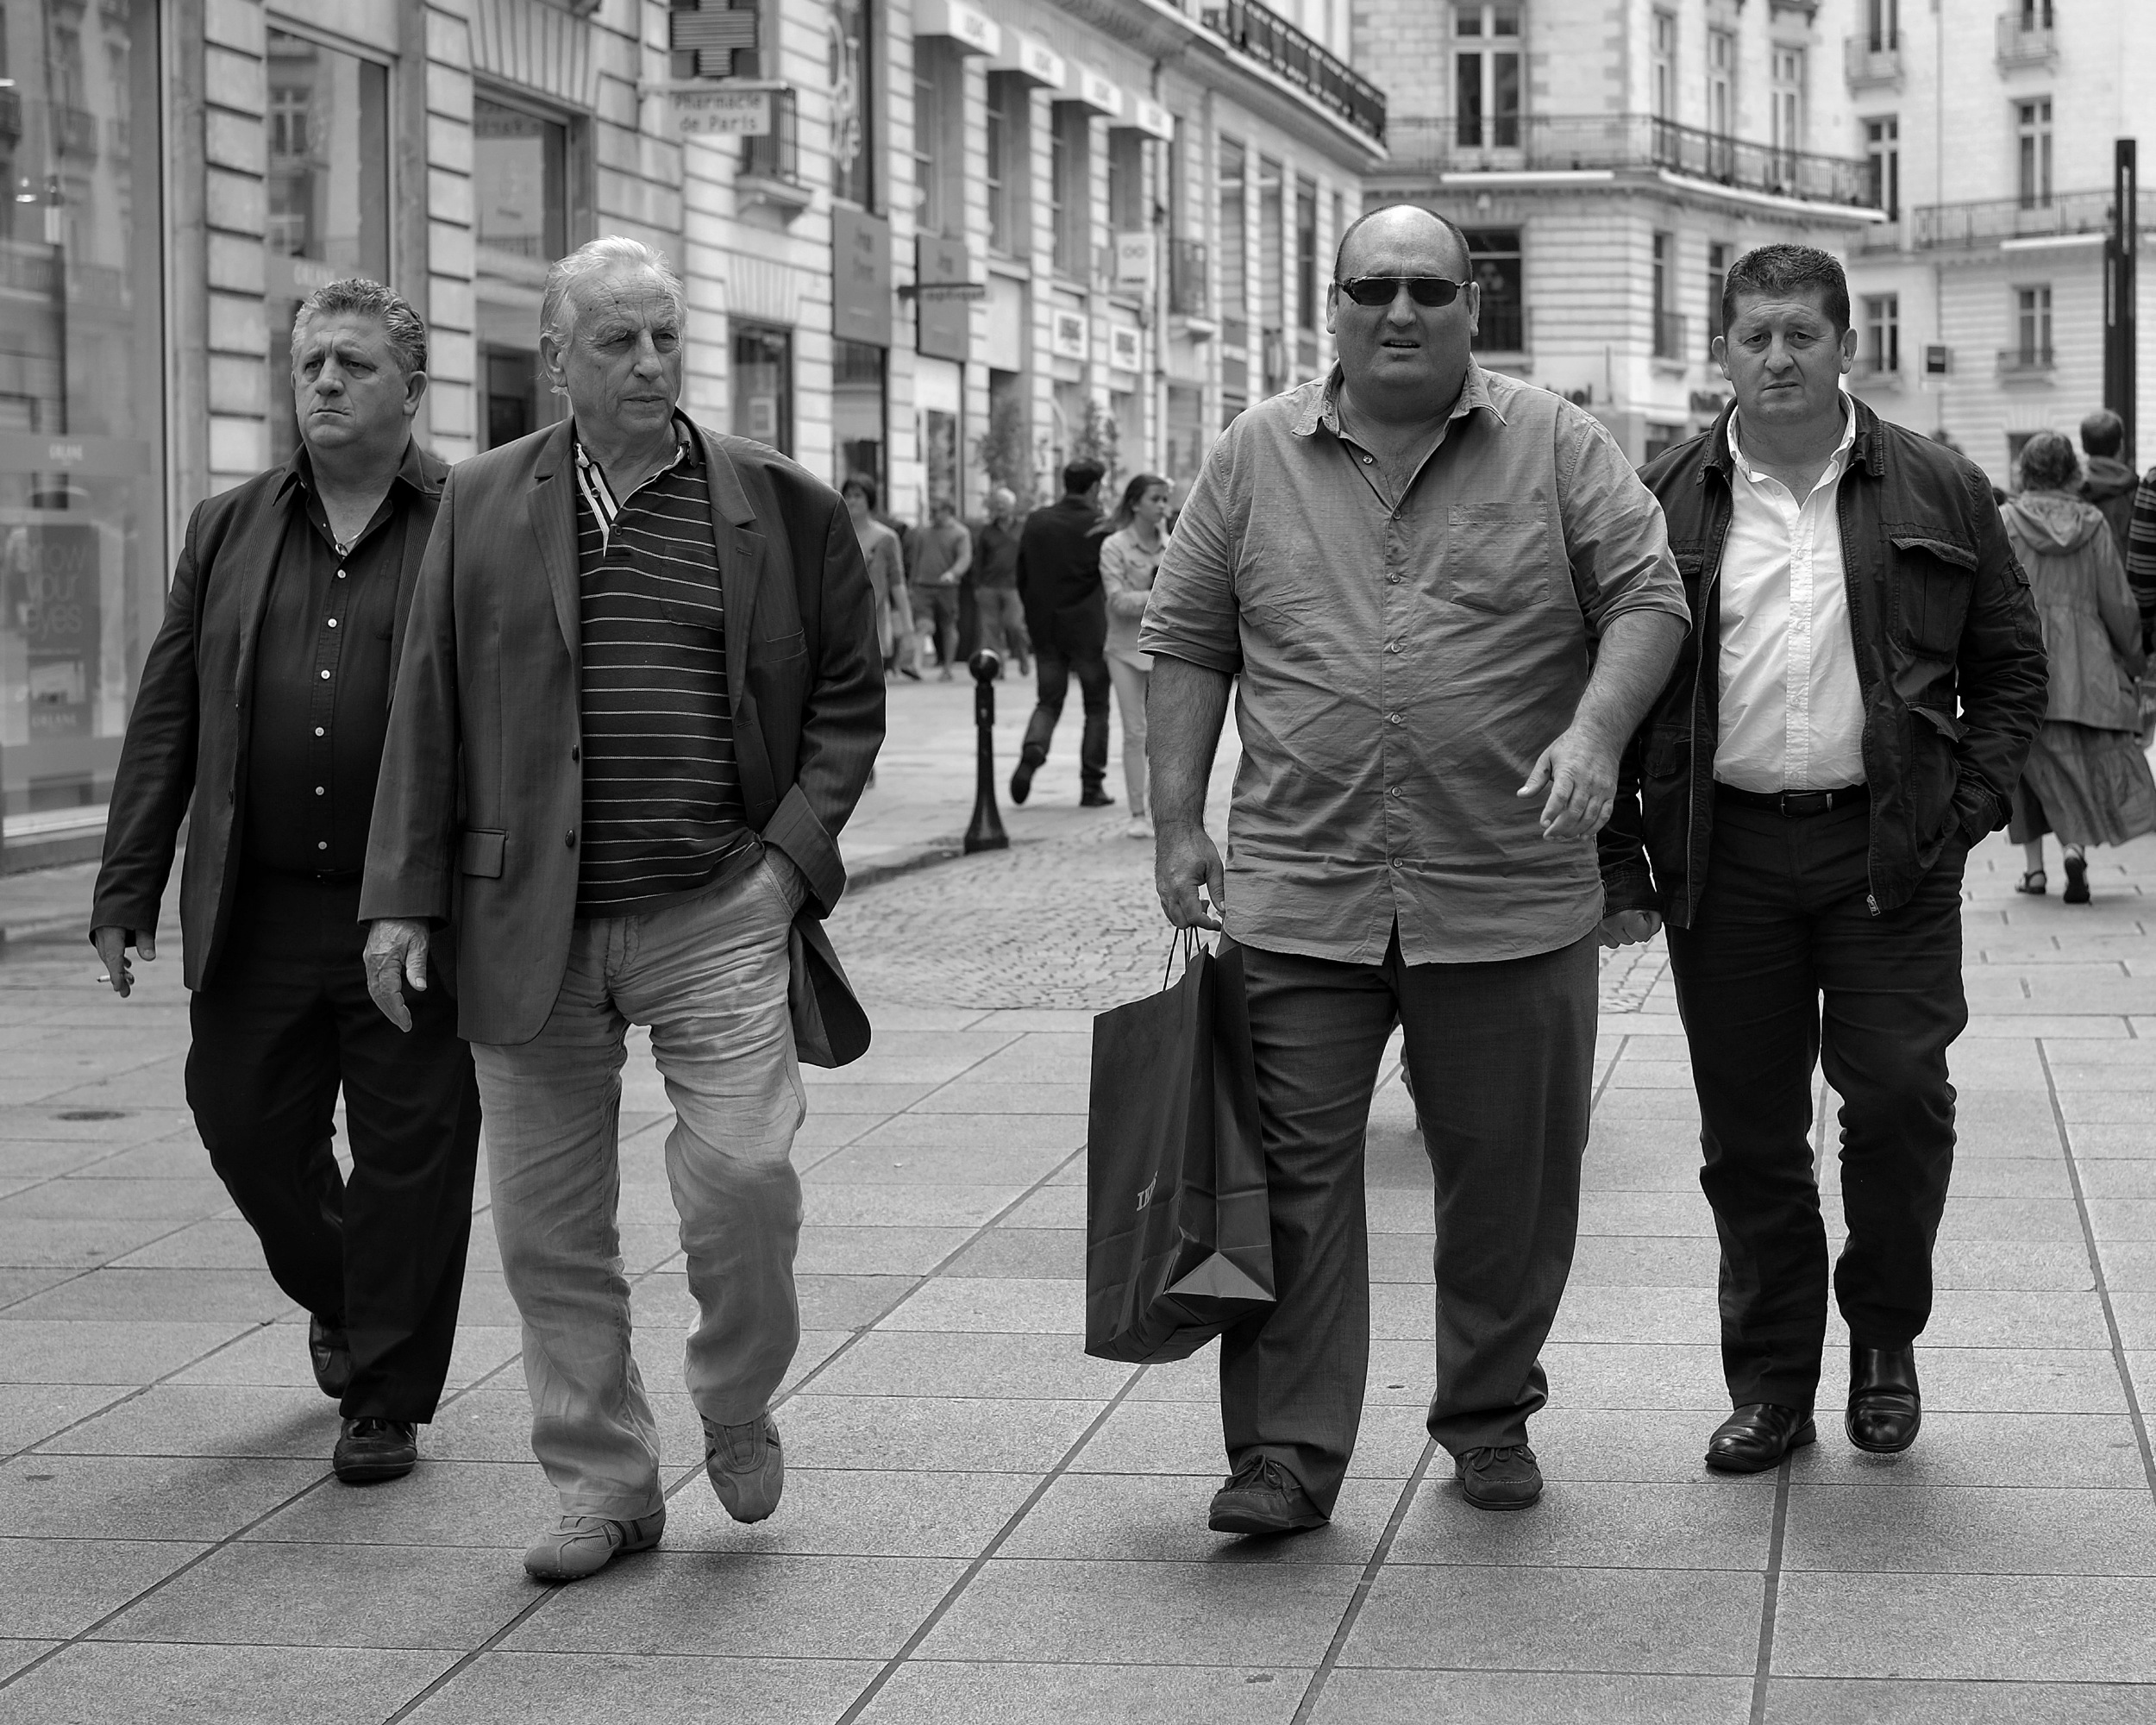 Mafia men walking in Nantes - Fuji X-Pro1